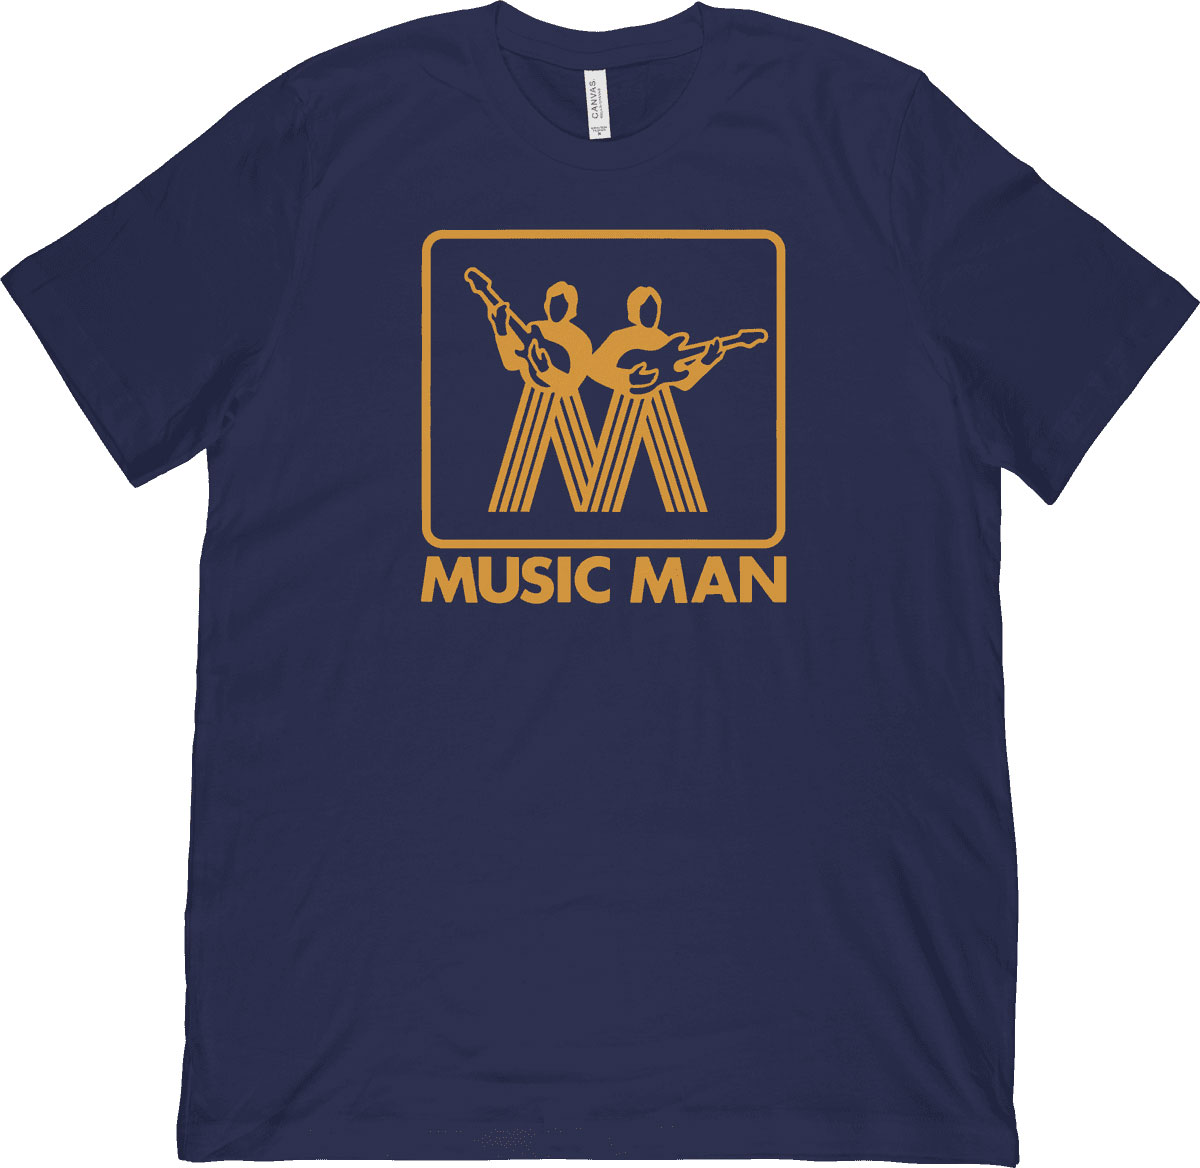 T-SHIRT MM VINTAGE GOLD LOGO - L